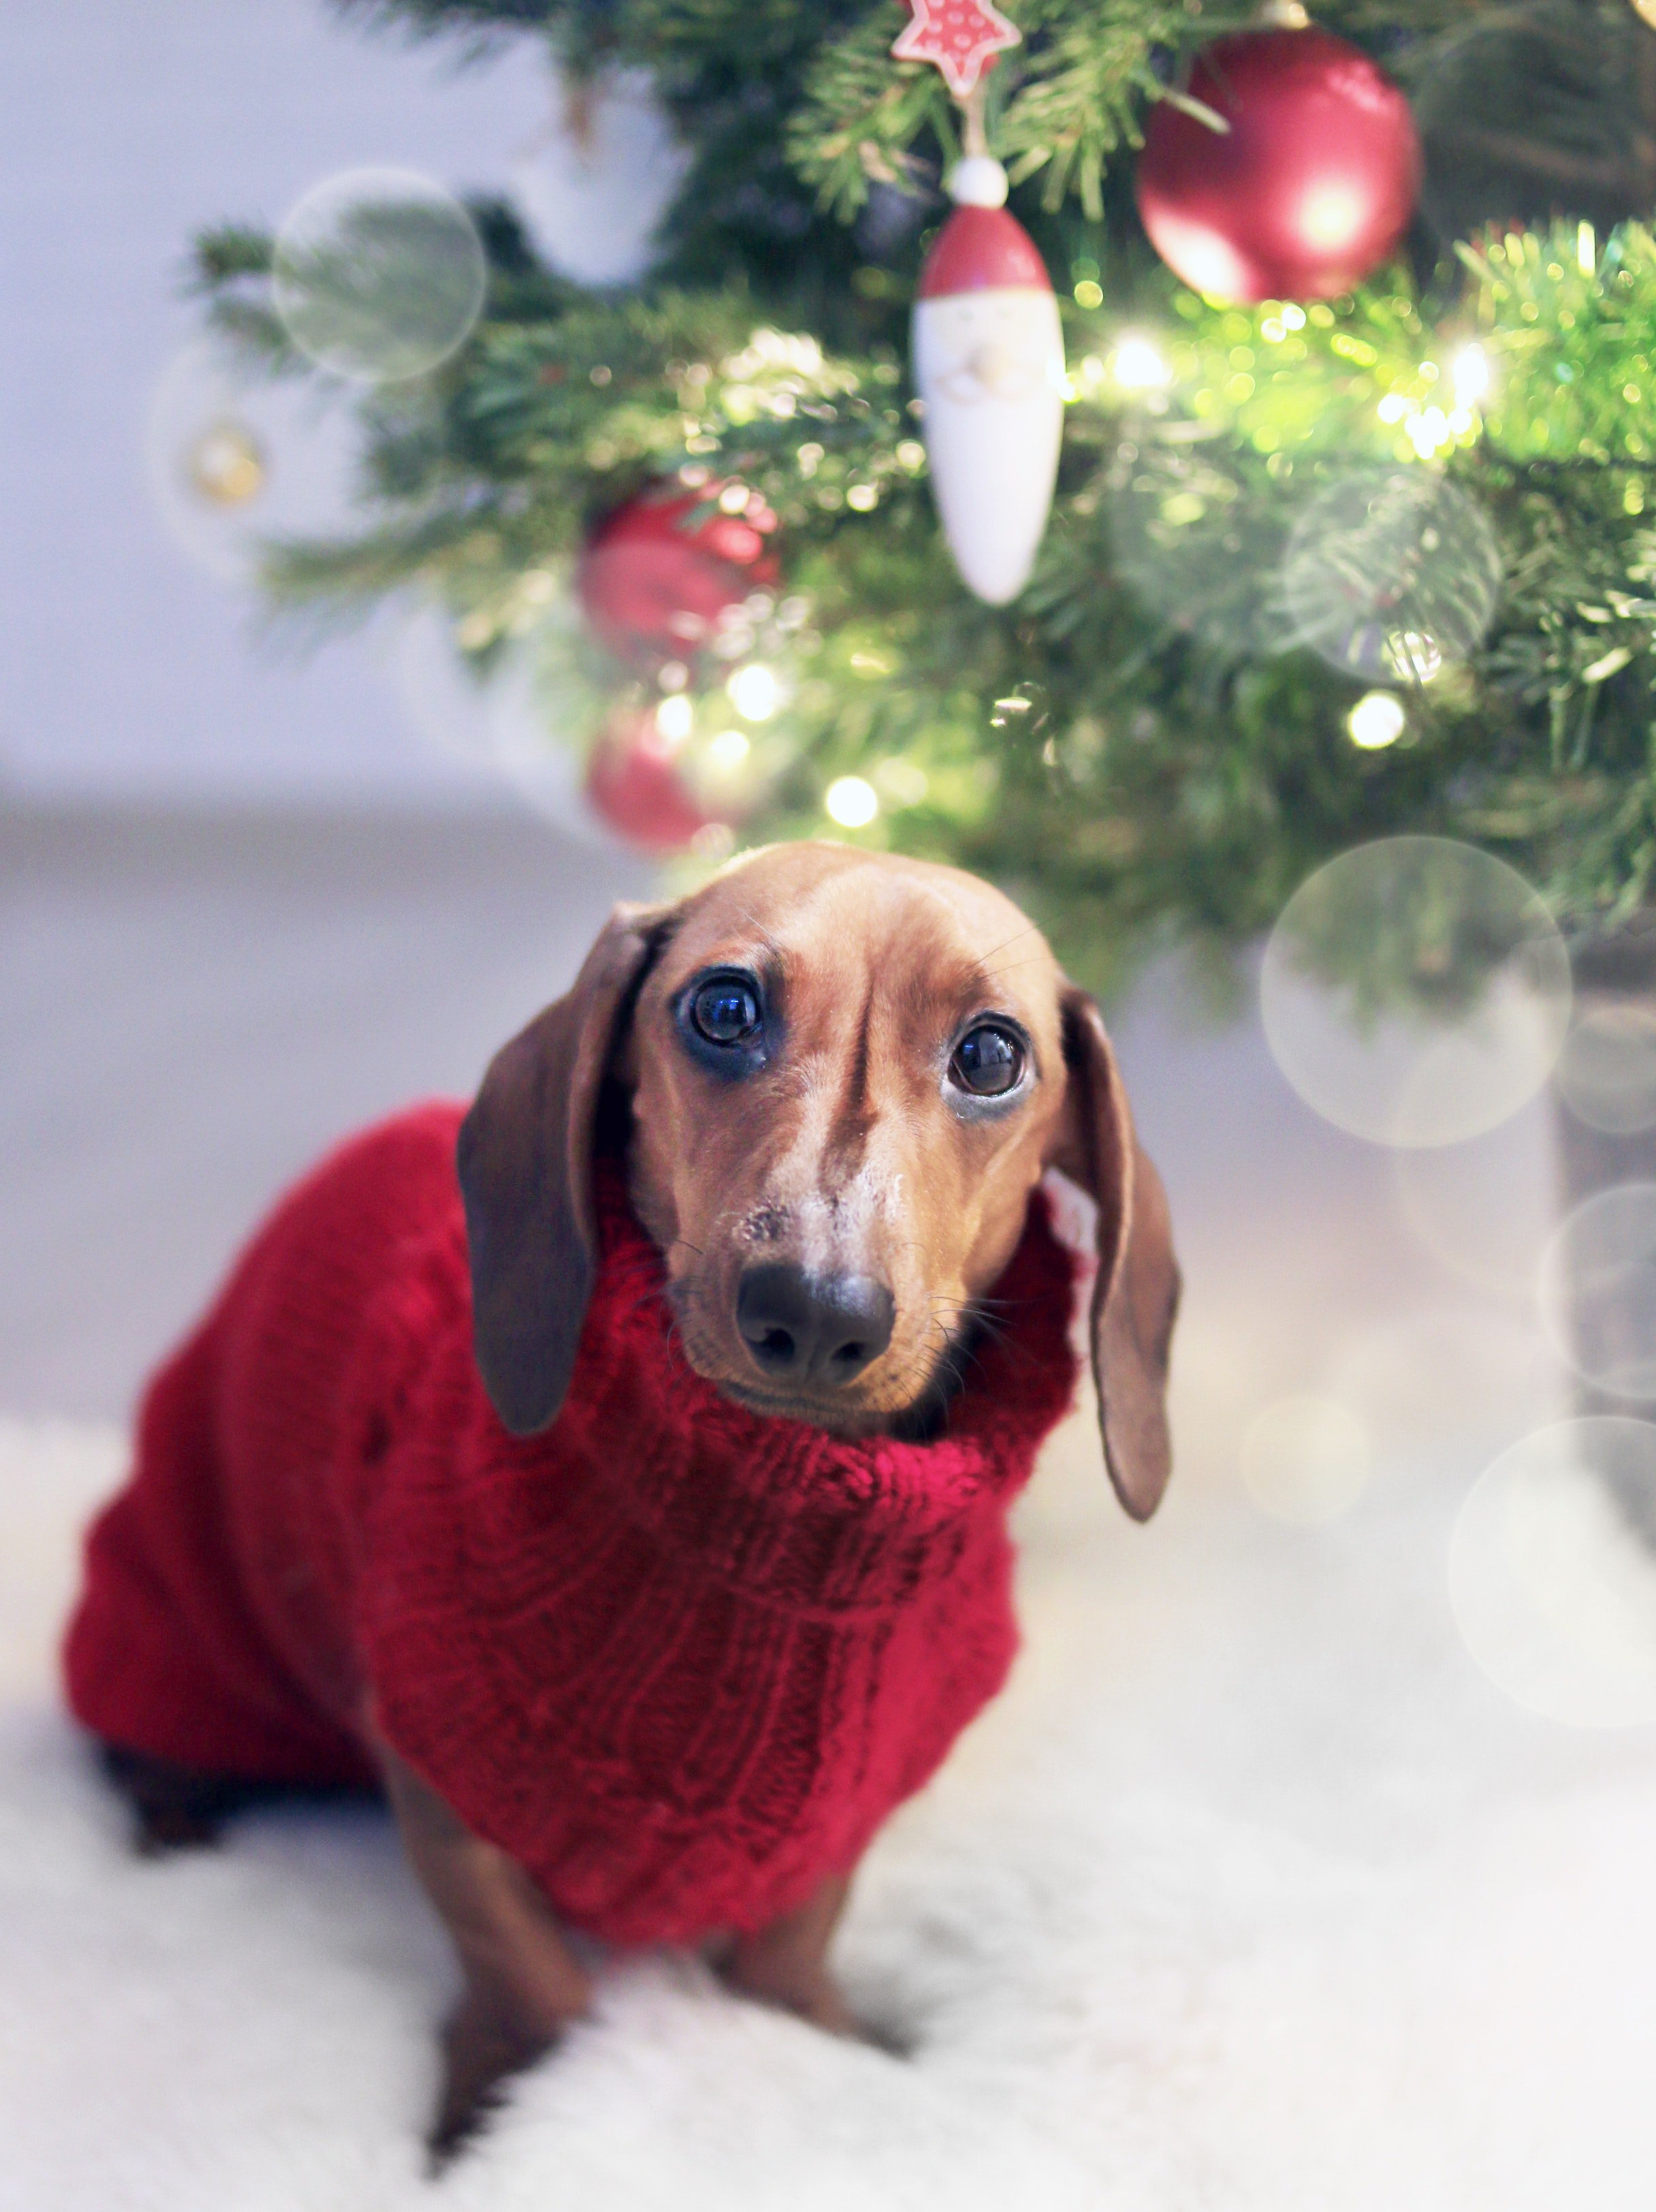 A Dachshund wearing a red sweater sitting next to a Christmas tree. | Source: Pexels.